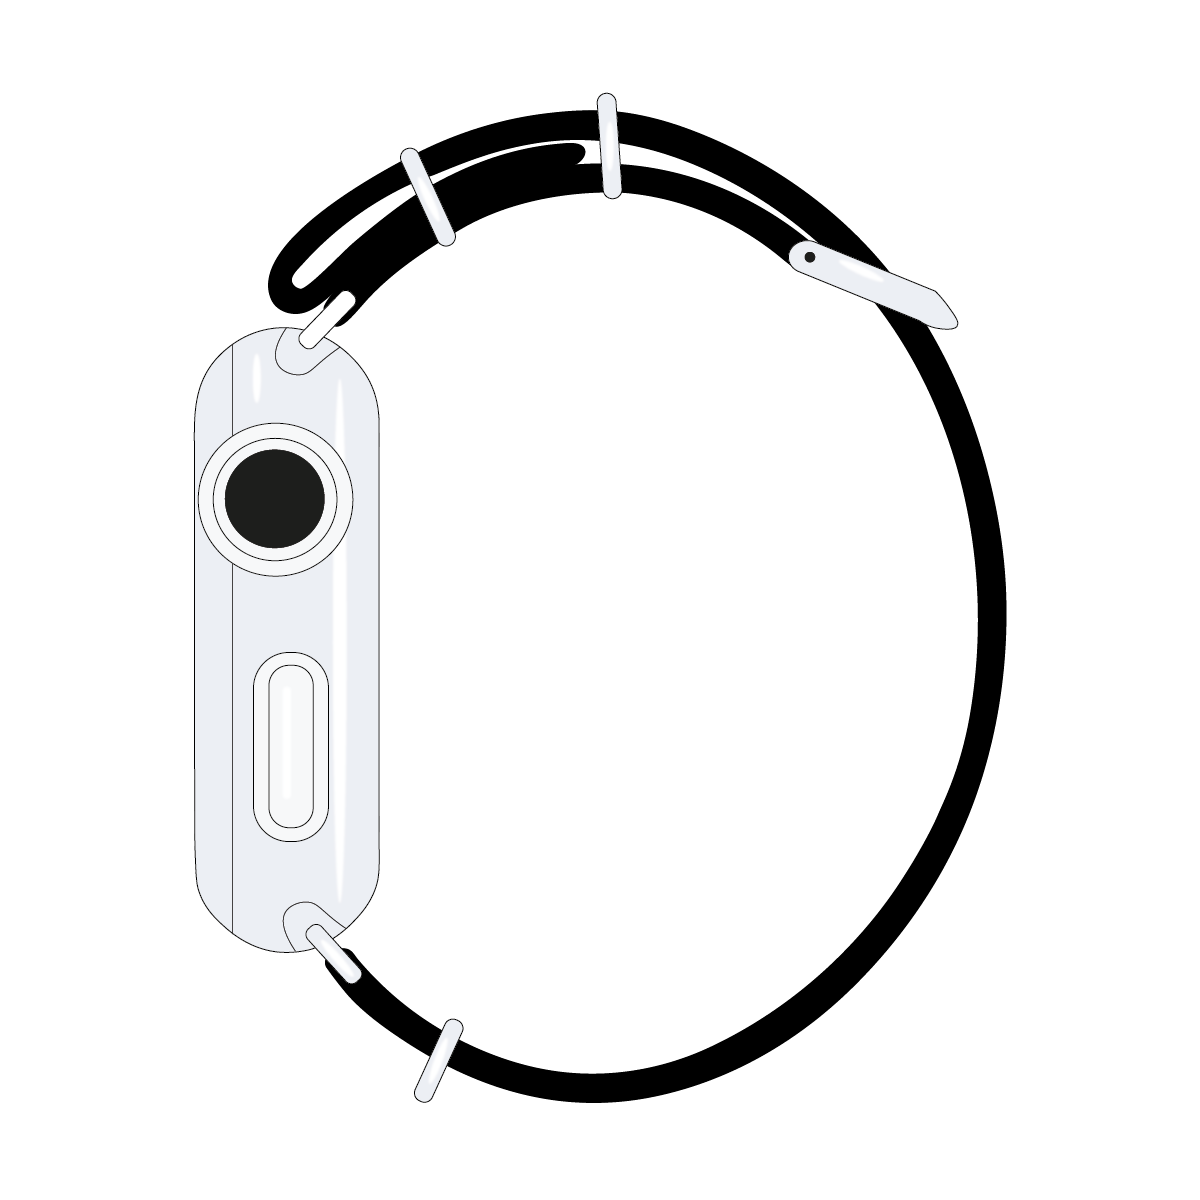 Cinturino Nato Apple Watch in nylon nero | Roobaya – Bild 4